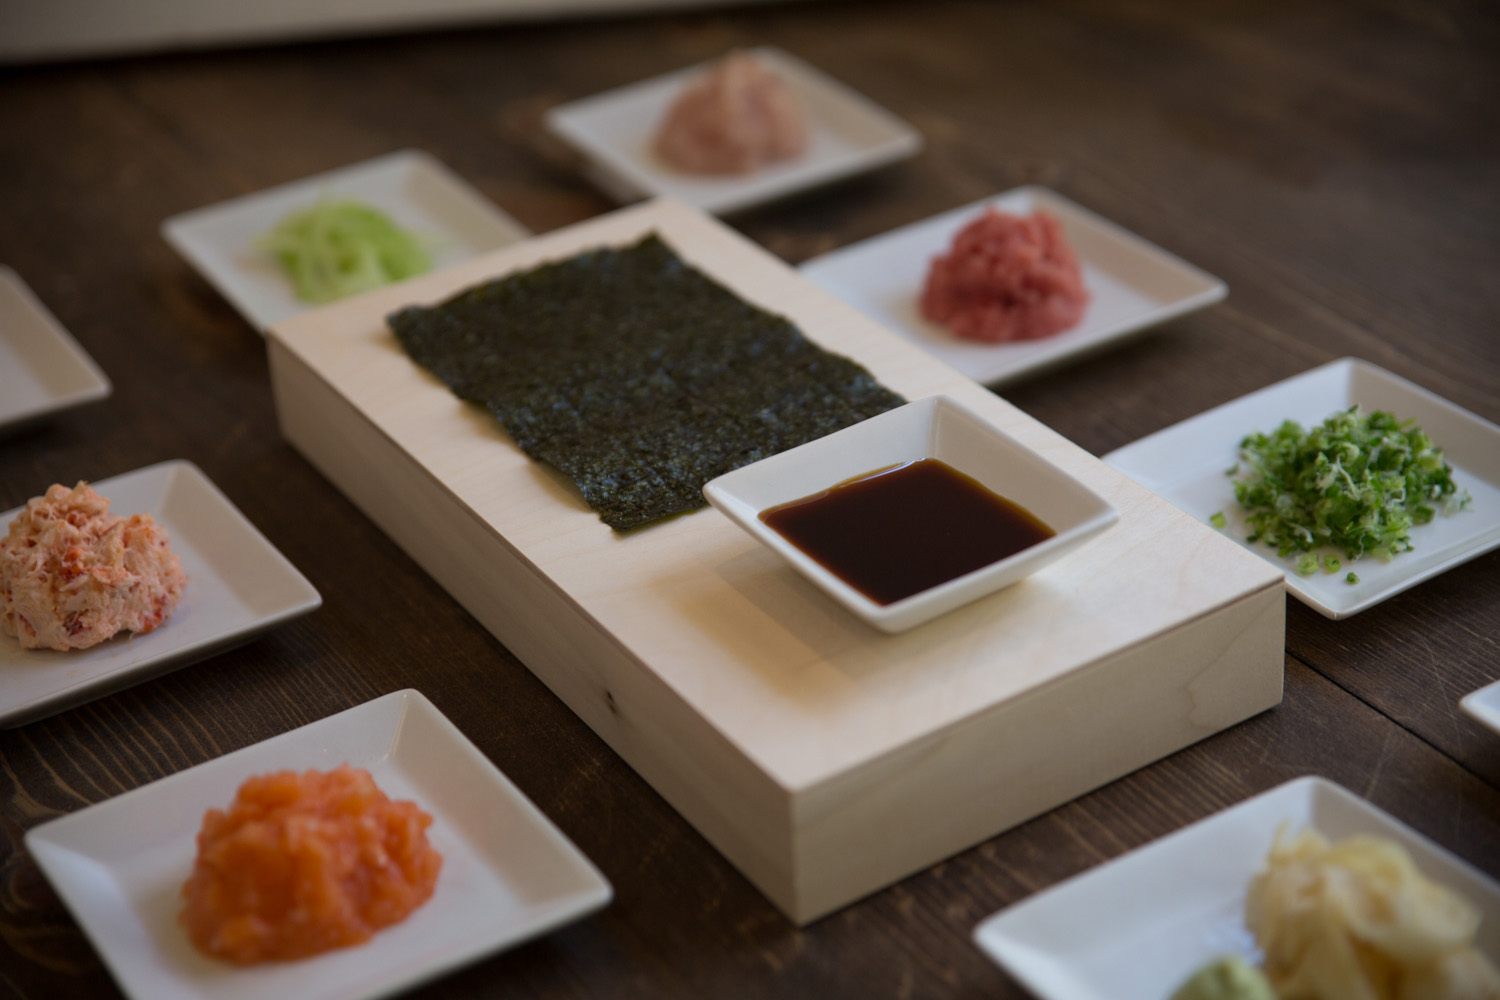 Dishes of hand roll ingredients